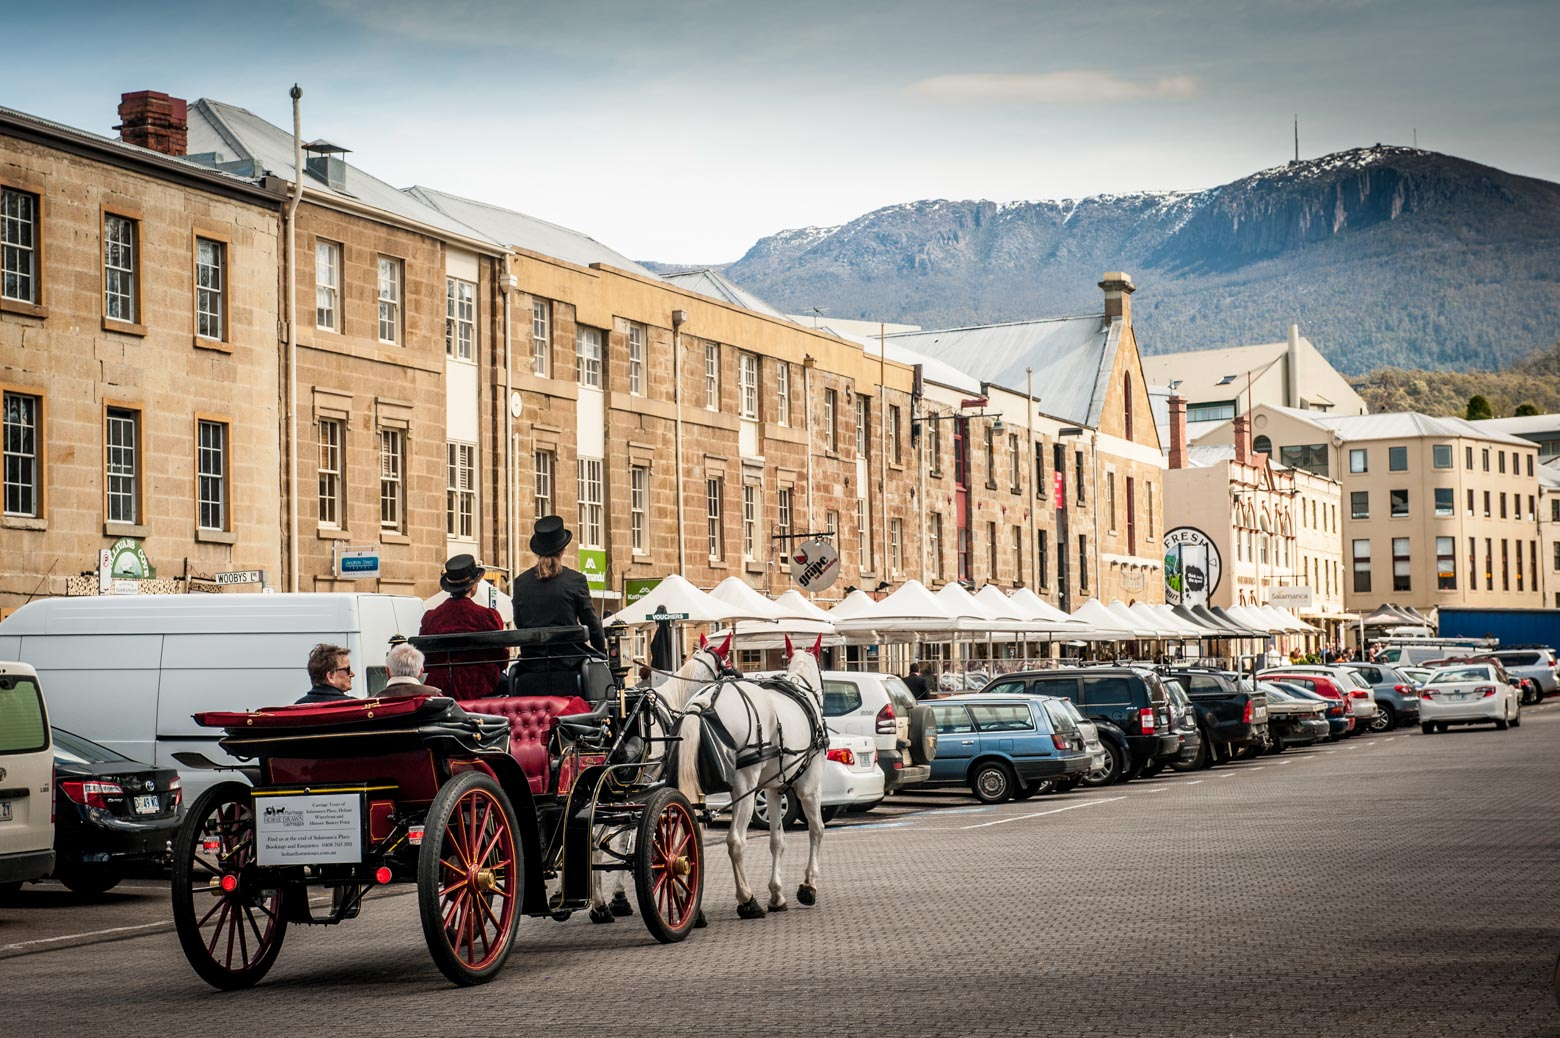 See the Historic Salamanca Waterfront by horse drawn carriage on your Lap of Tasmania road trip